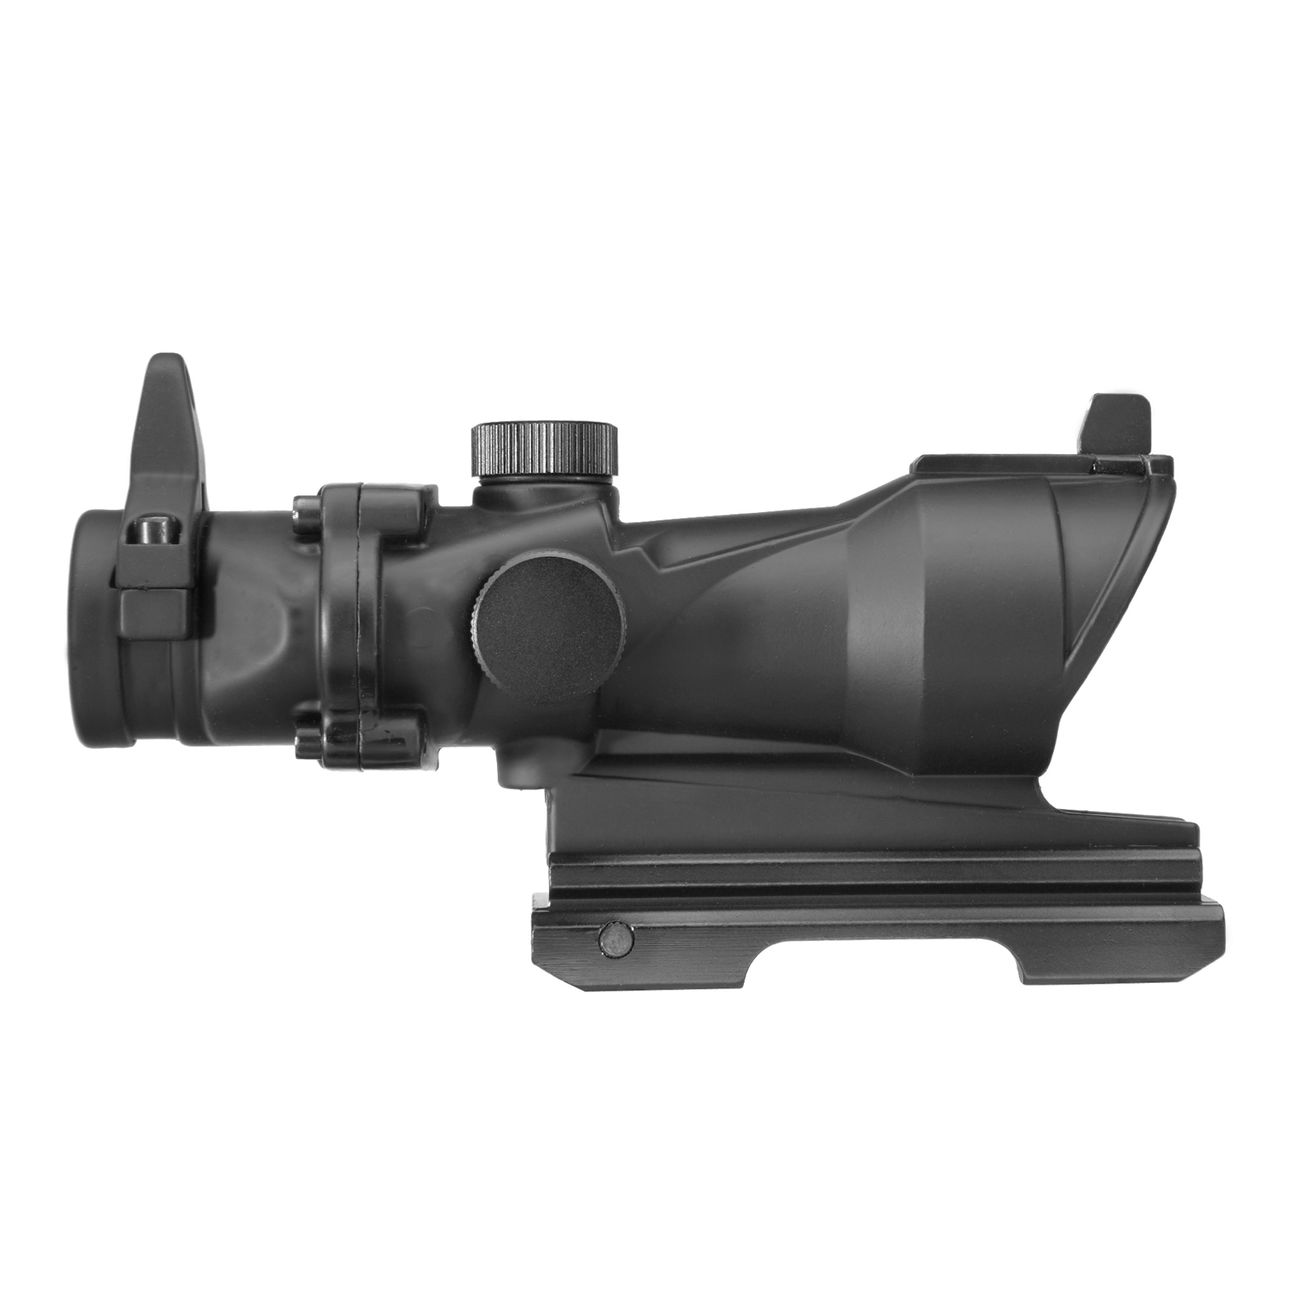 Aim-O TA01 Style Scope 4x32 mit QD-Mount schwarz AO 5310-BK 2